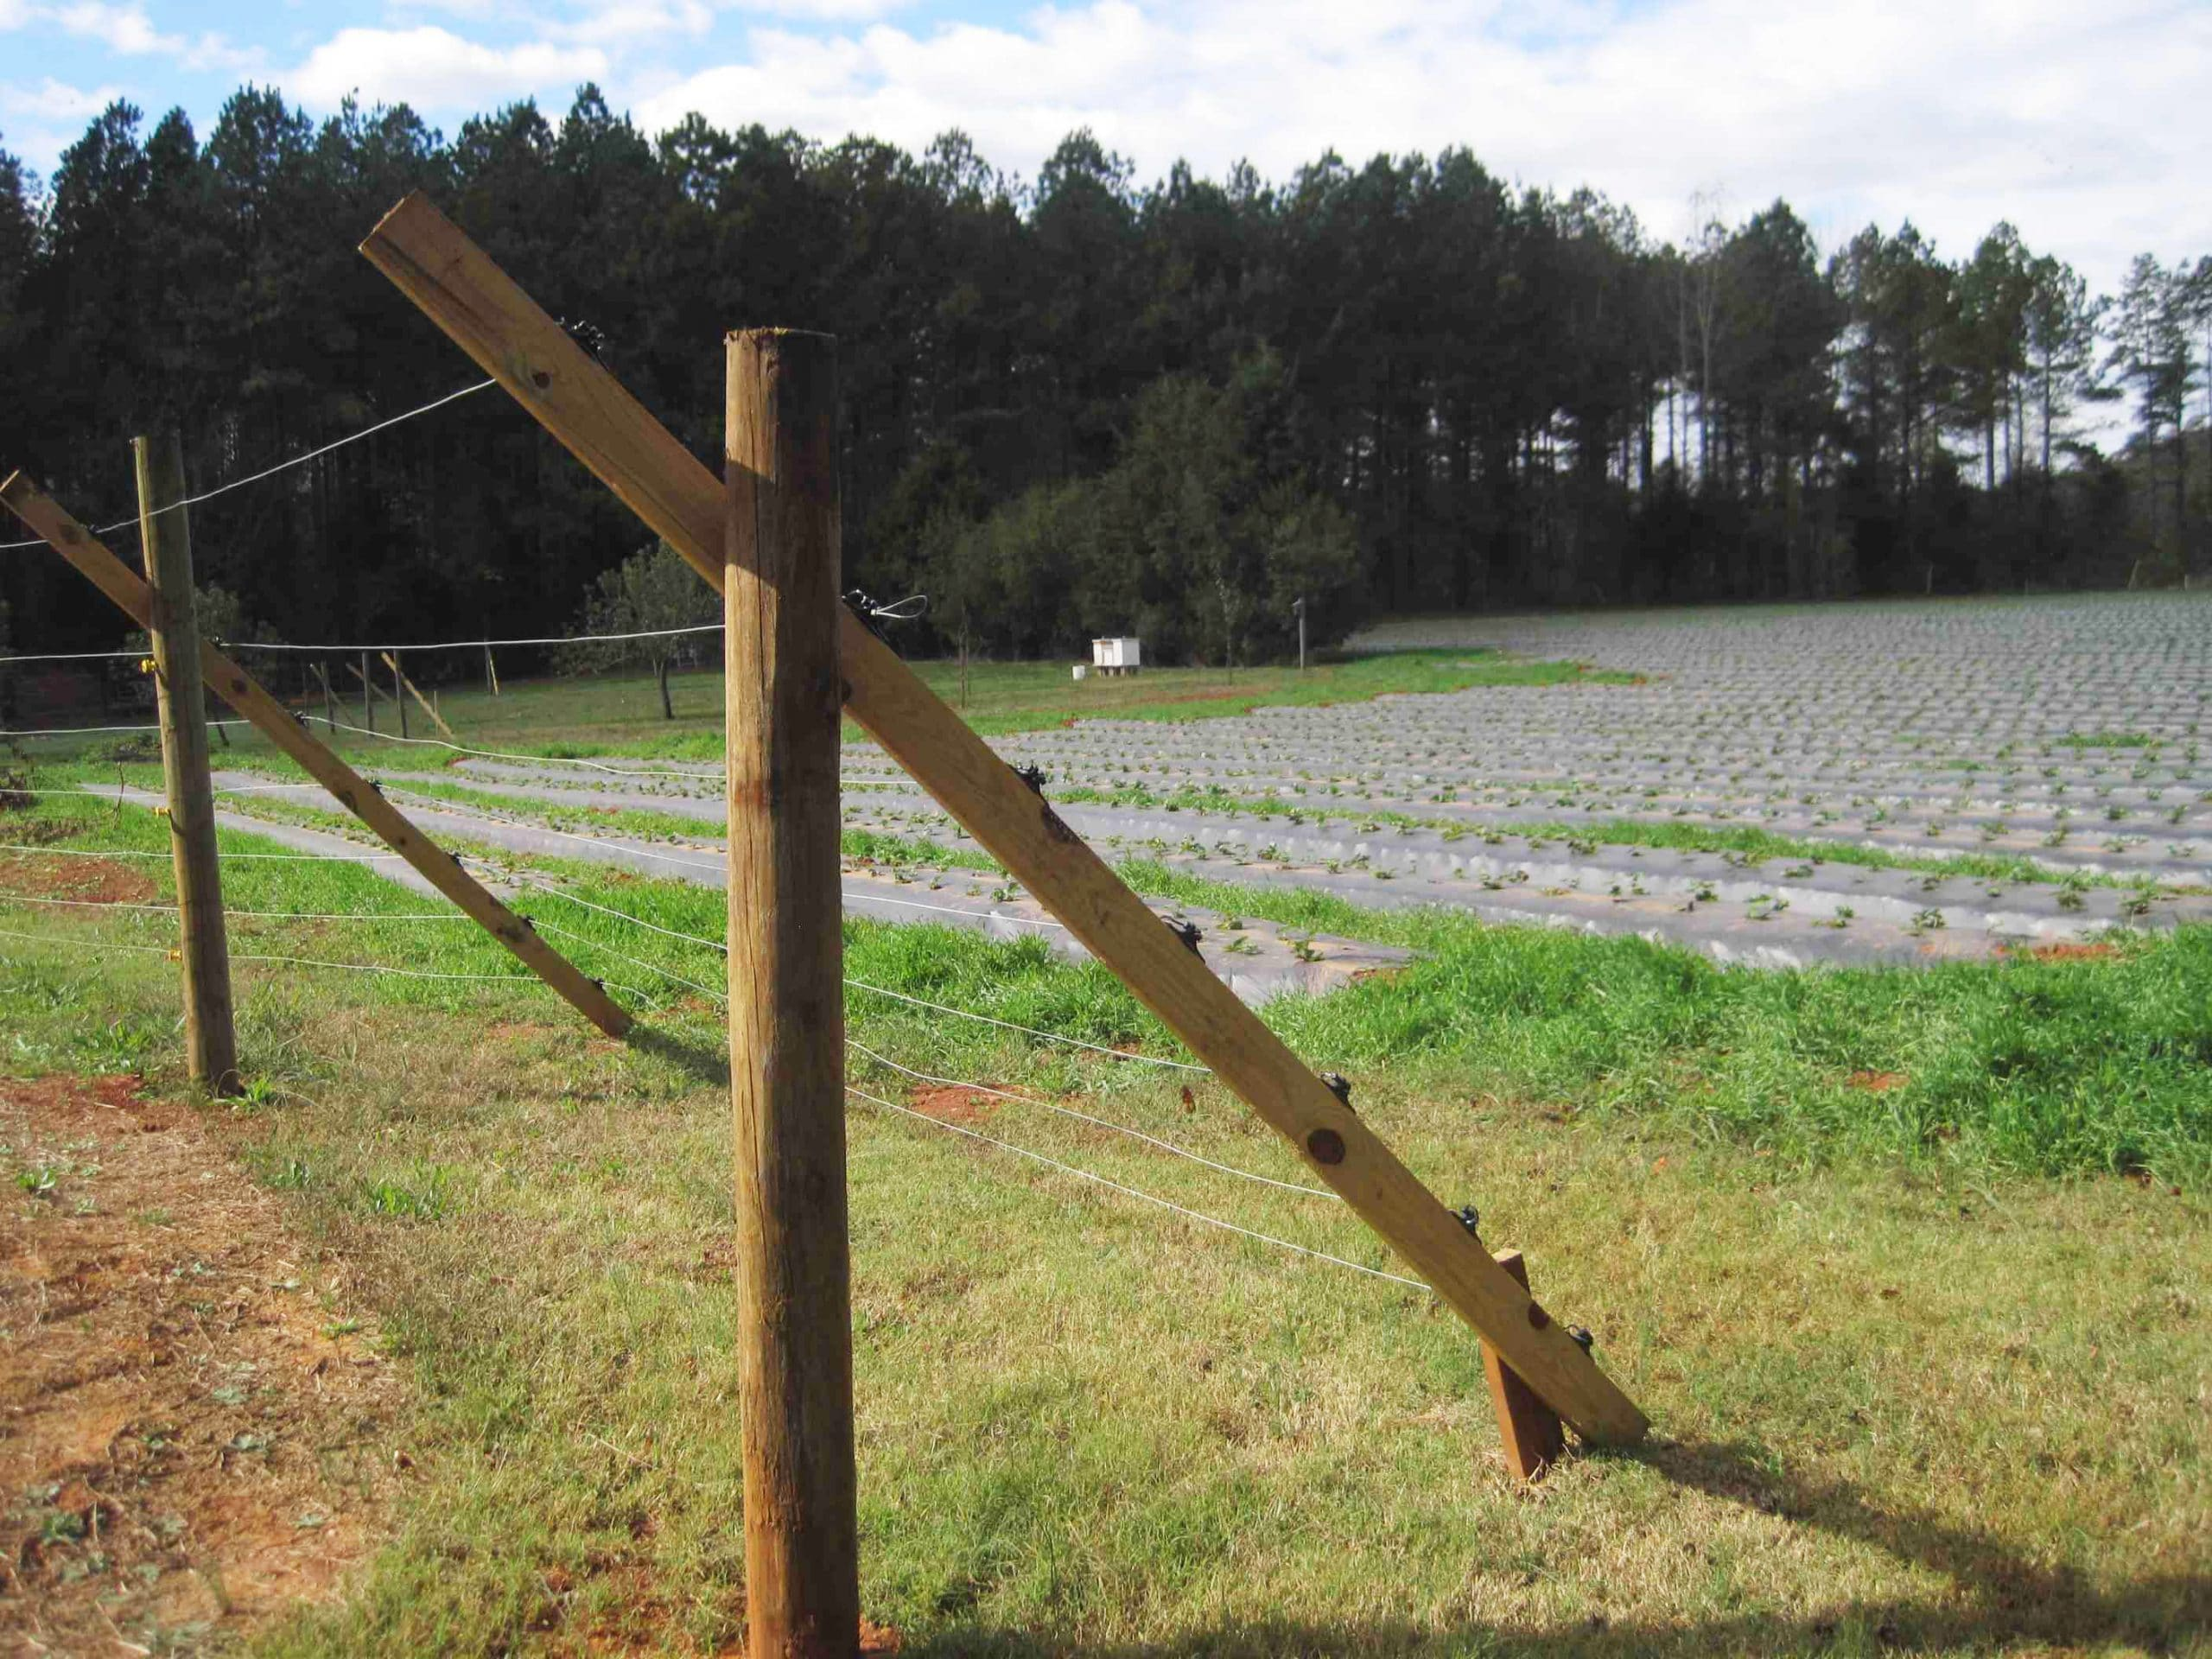 Slanted wire deer fence protecting a farm field